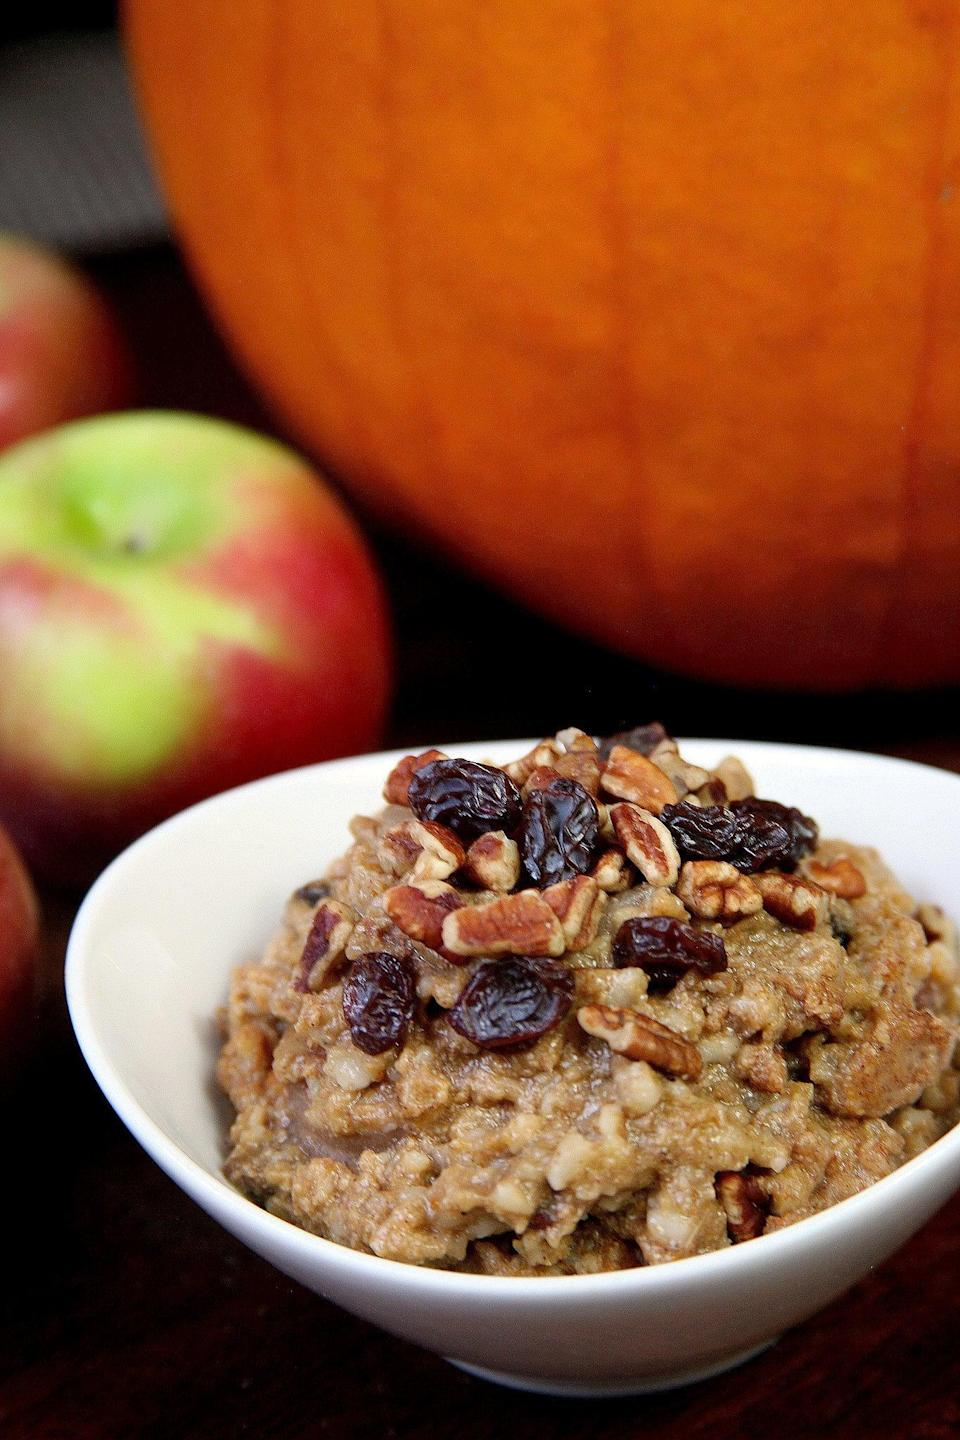 "<p>Just throw the ingredients in your slow cooker and get ready to have this pumpkin spice oatmeal high five your taste buds come morning. </p> <p><strong>Calories:</strong> 382<br> <strong>Protein:</strong> 13 grams</p> <p><strong>Get the recipe:</strong> <a href=""https://www.popsugar.com/fitness/Slow-Cooker-Pumpkin-Pie-Steel-Cut-Oats-35883531"" class=""link rapid-noclick-resp"" rel=""nofollow noopener"" target=""_blank"" data-ylk=""slk:slow-cooker pumpkin spice oatmeal"">slow-cooker pumpkin spice oatmeal</a></p>"